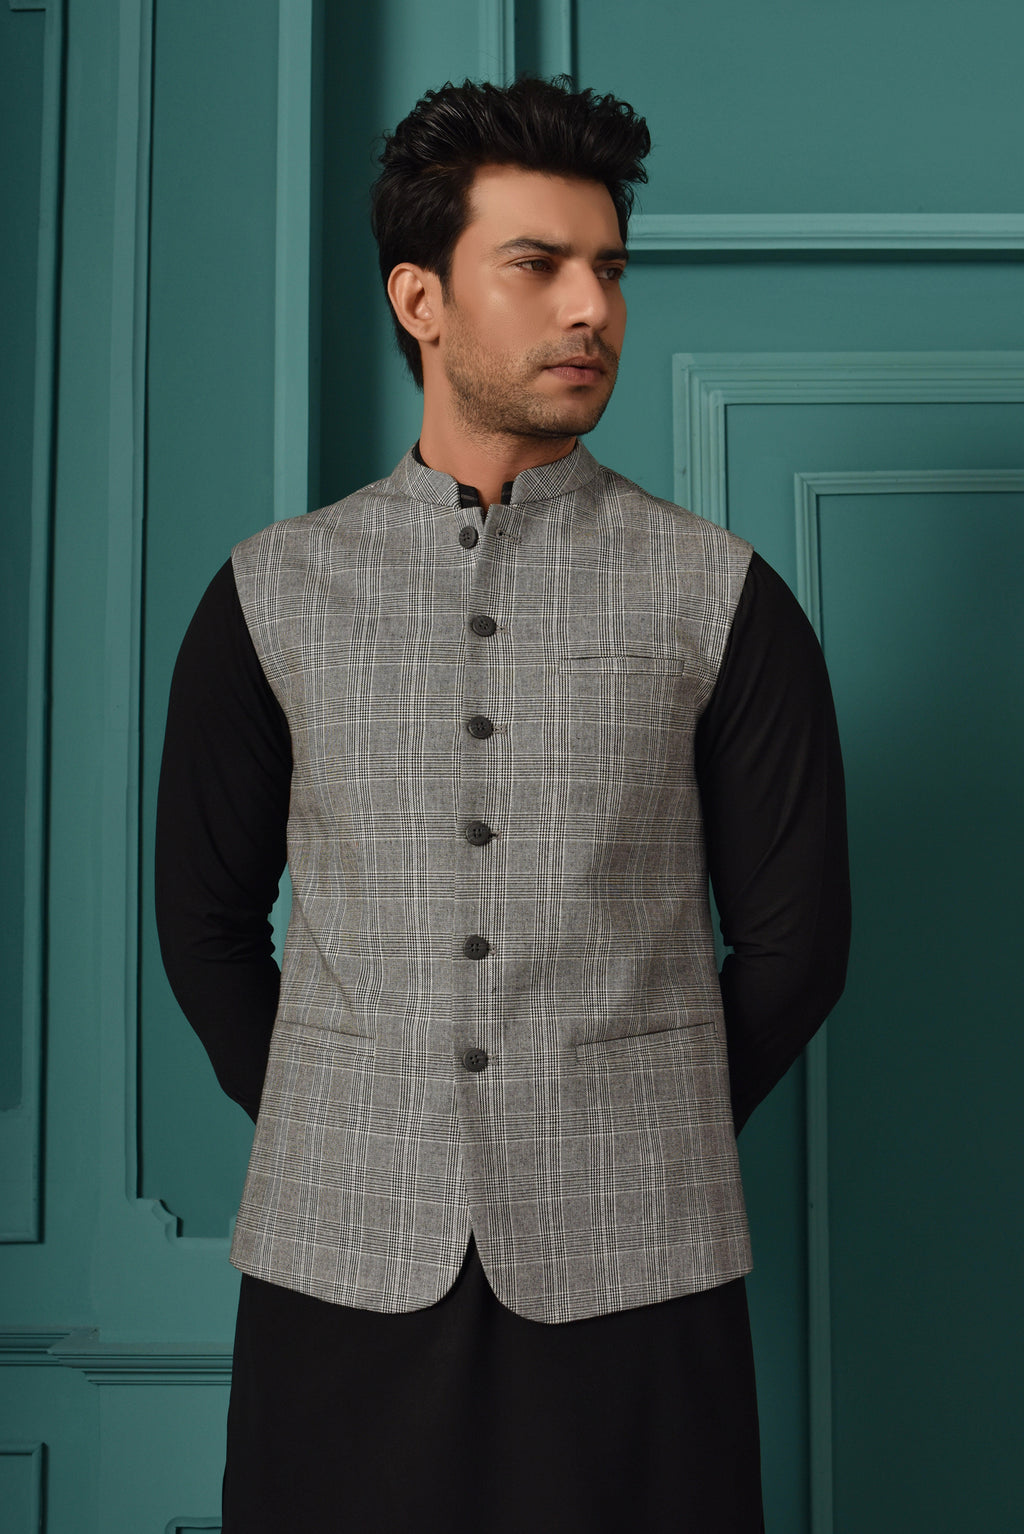 Waistcoat - Ethnic by Outfitters